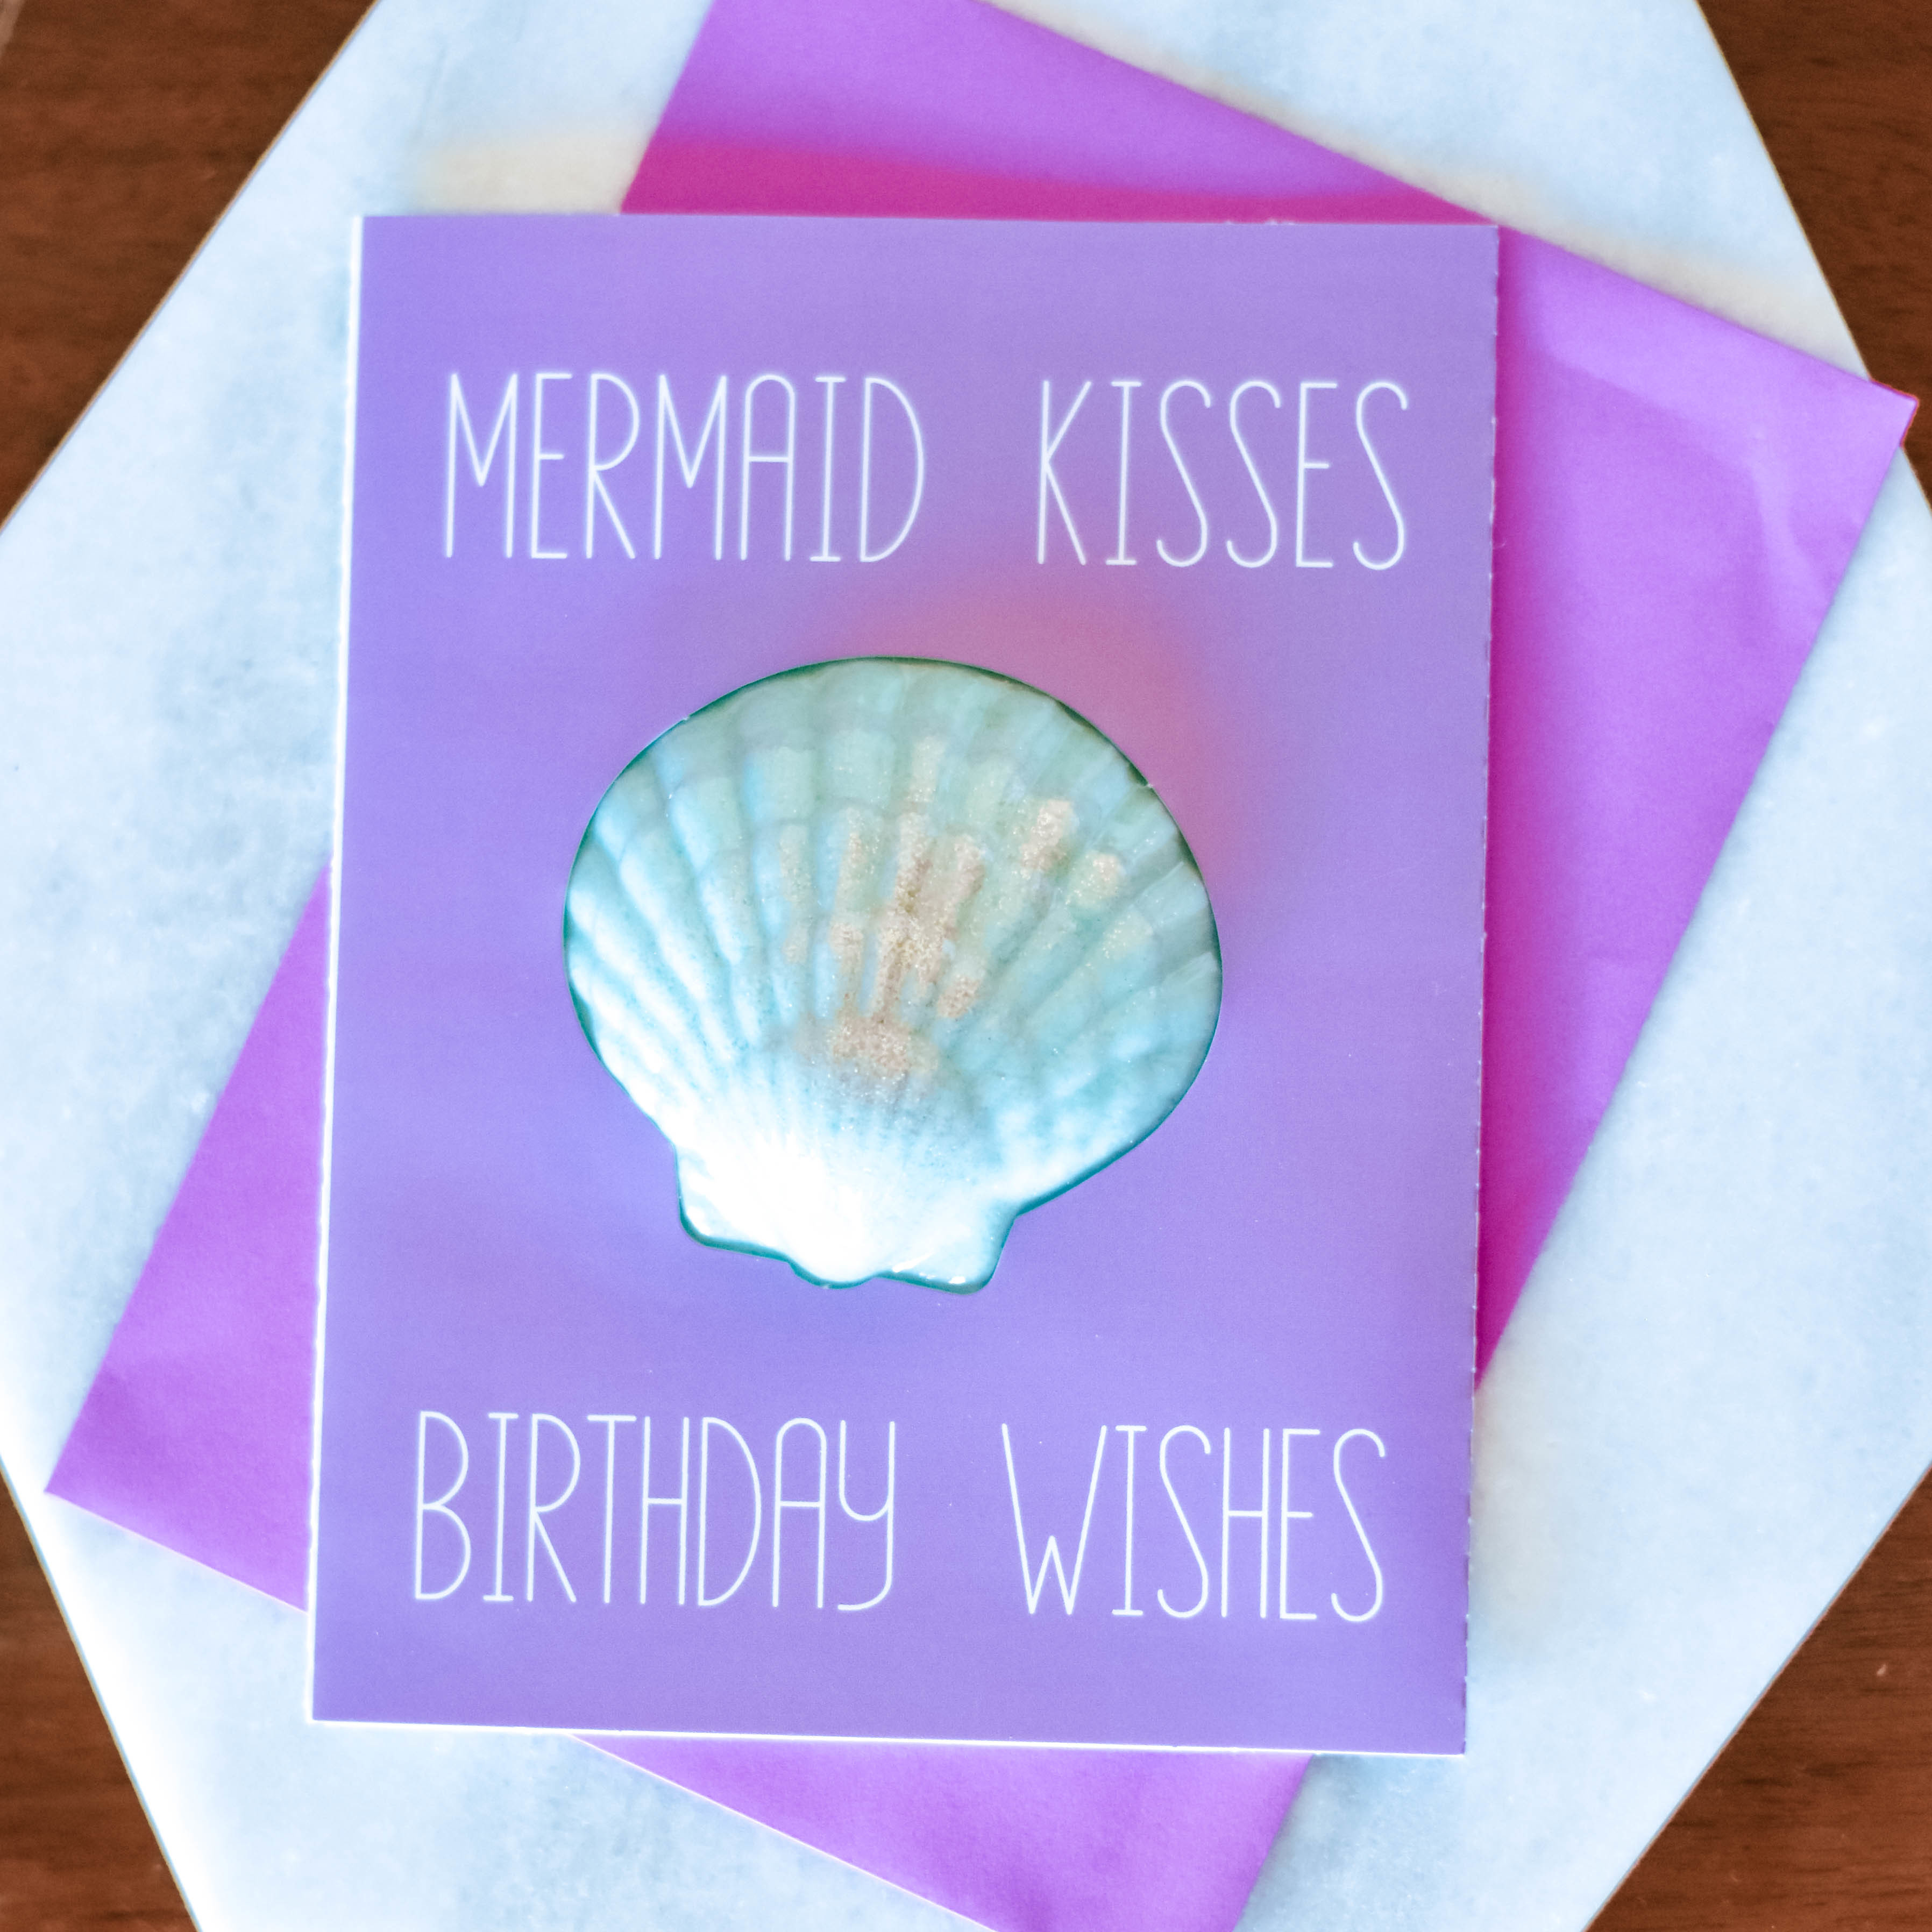 mermaid kisses bath bomb card HZZA7R1JJ1G6R